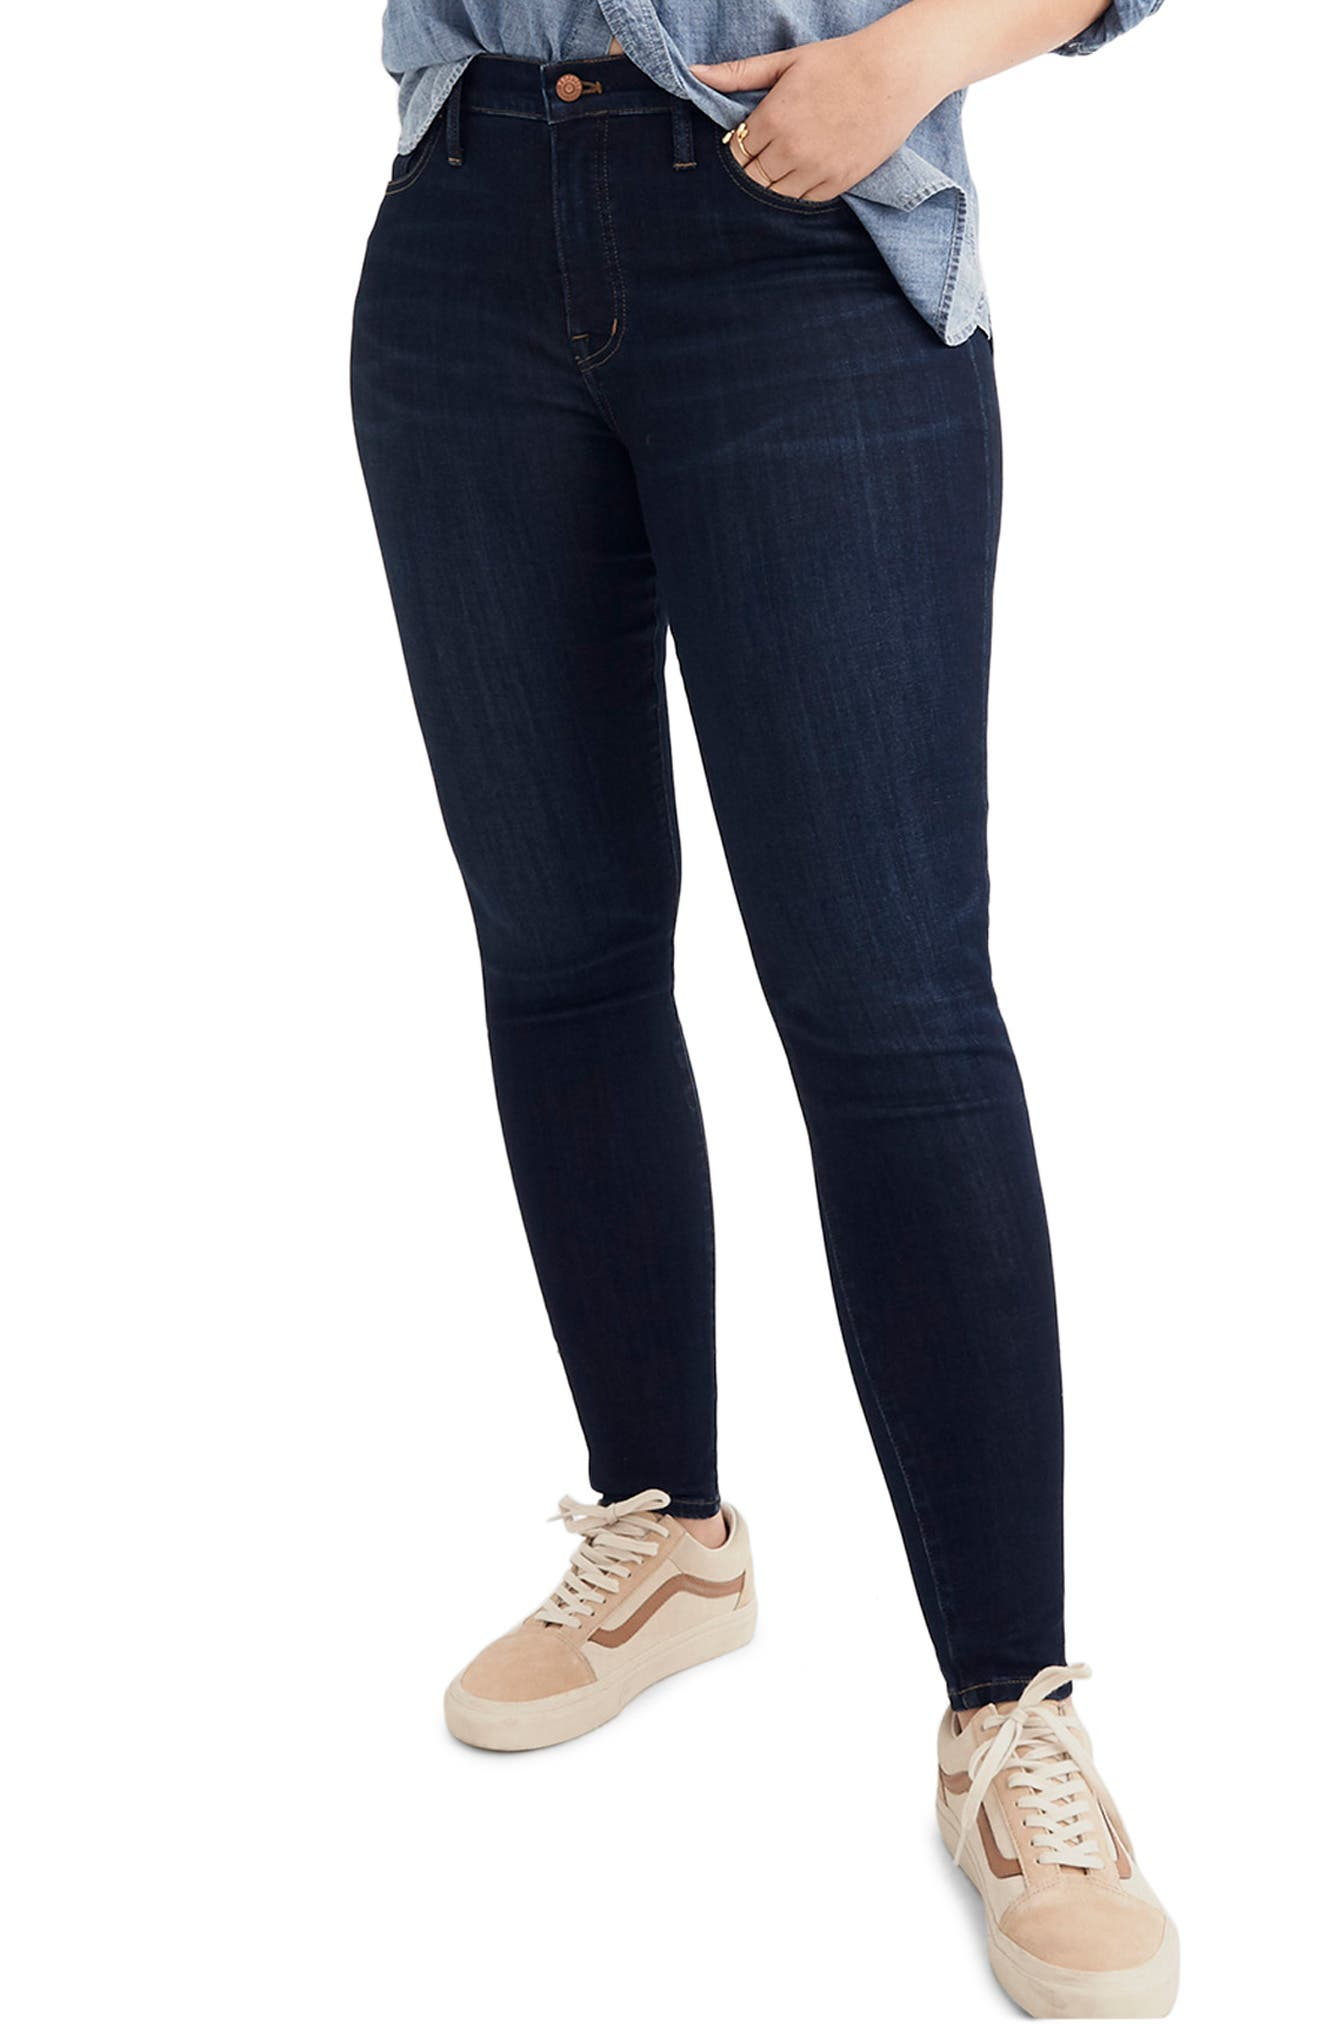 MADEWELL, 9-Inch High Rise Skinny Jeans, Alternate thumbnail 2, color, LARKSPUR